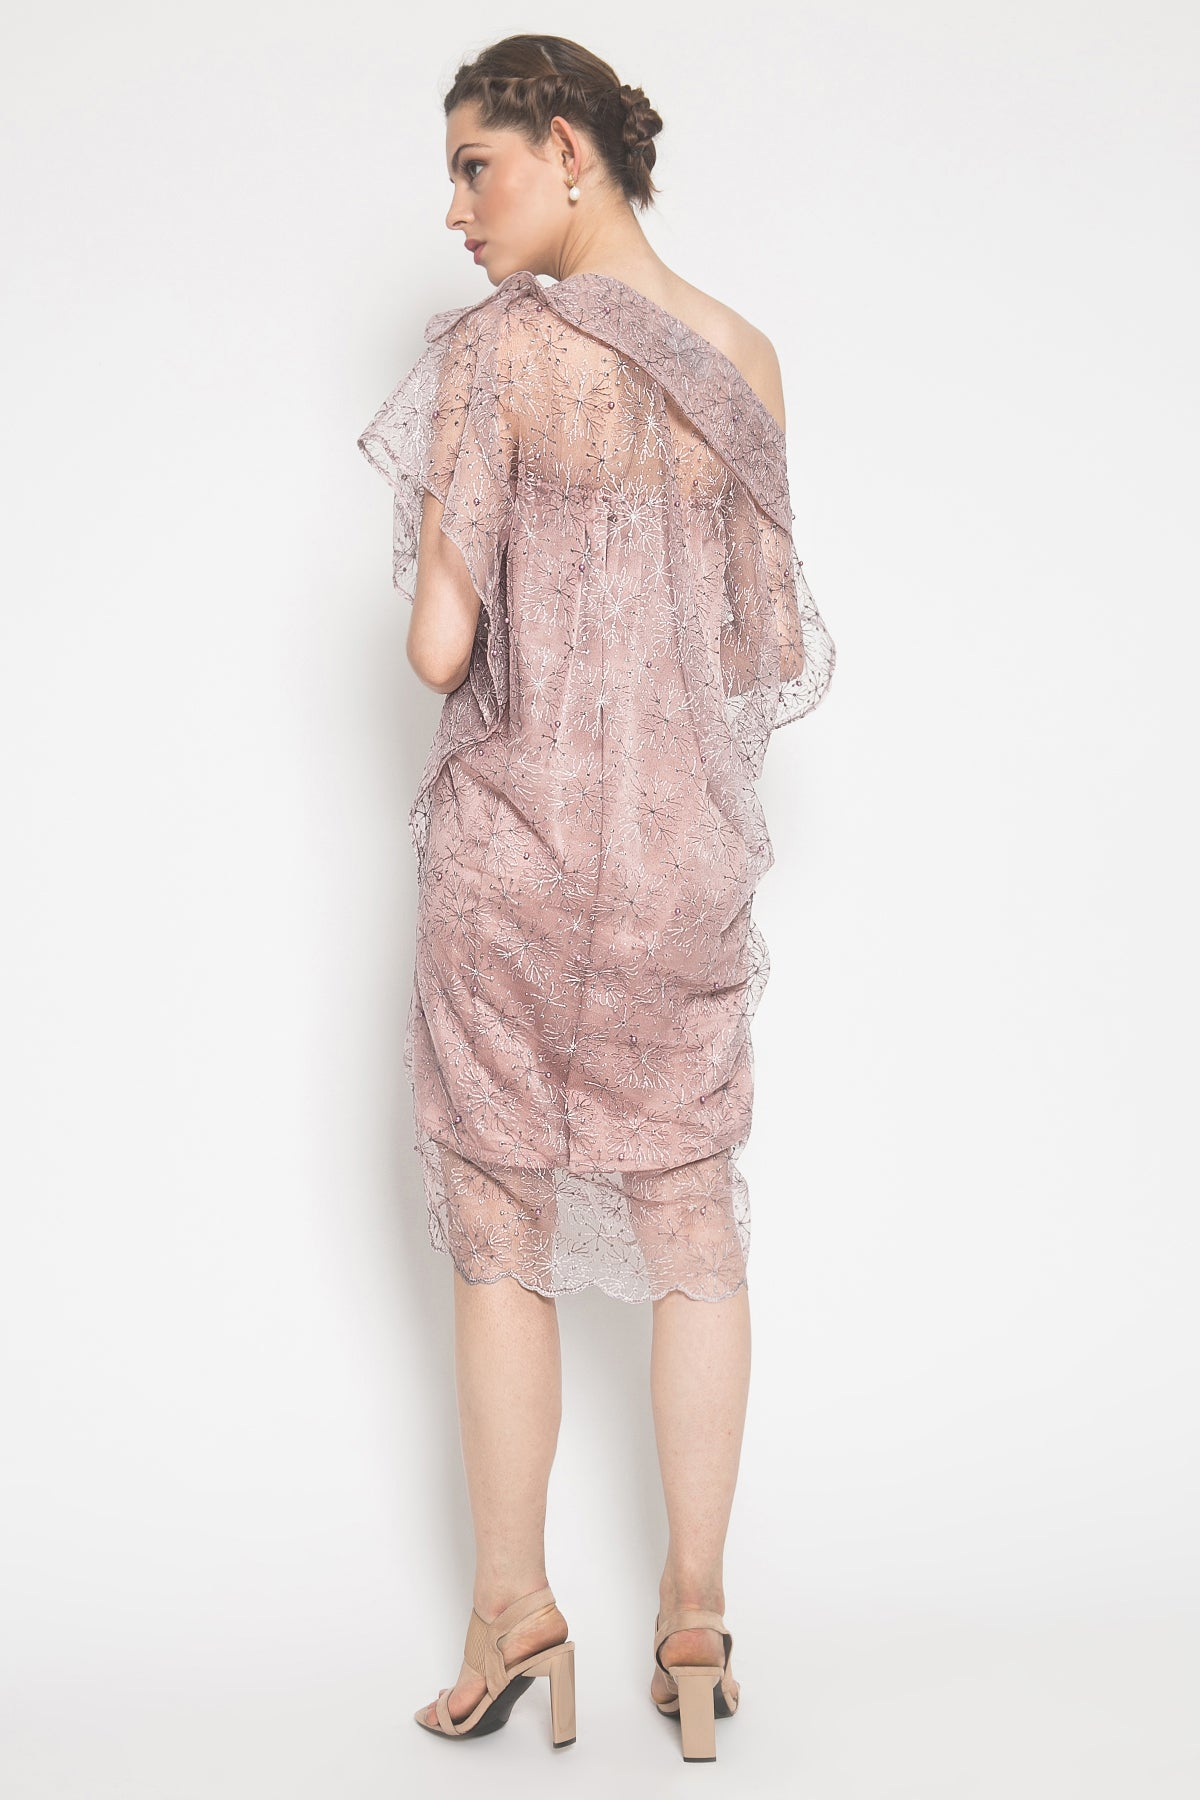 Kania Dress in Pink